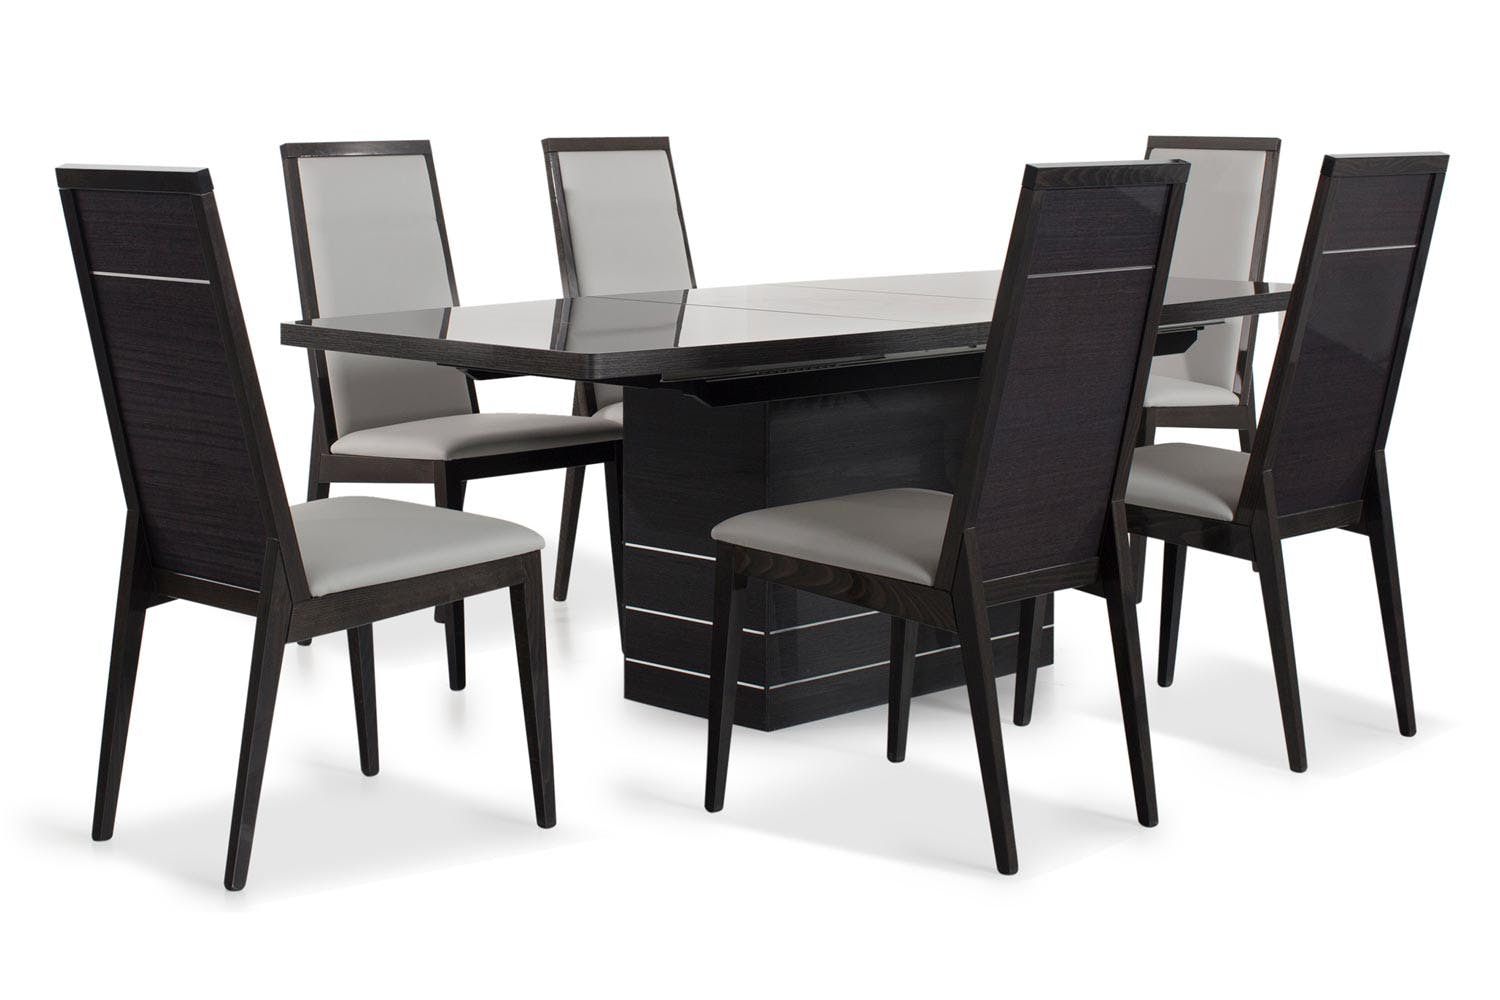 Versilia dining set with versilia chairs 7 piece ireland for 7 piece dining set with bench